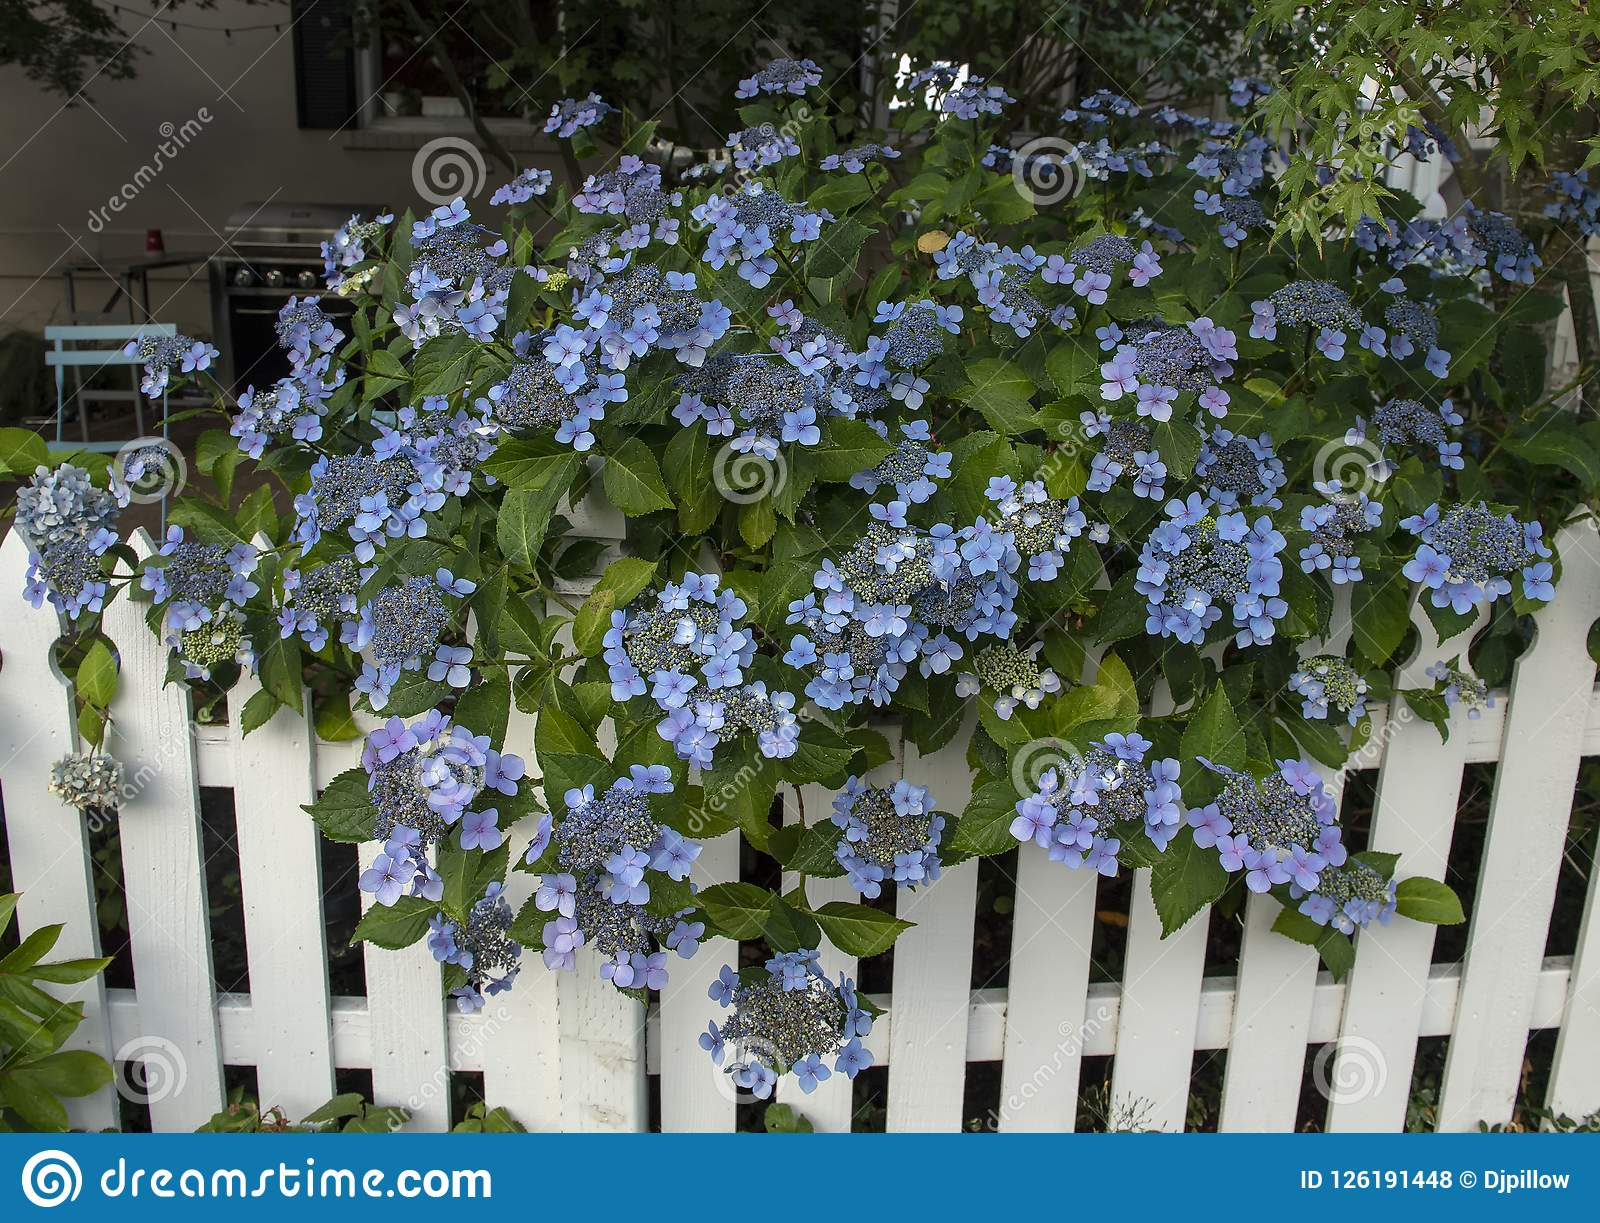 Shurb With Blue Flower Clusters Overhanging A White Picket Fence In